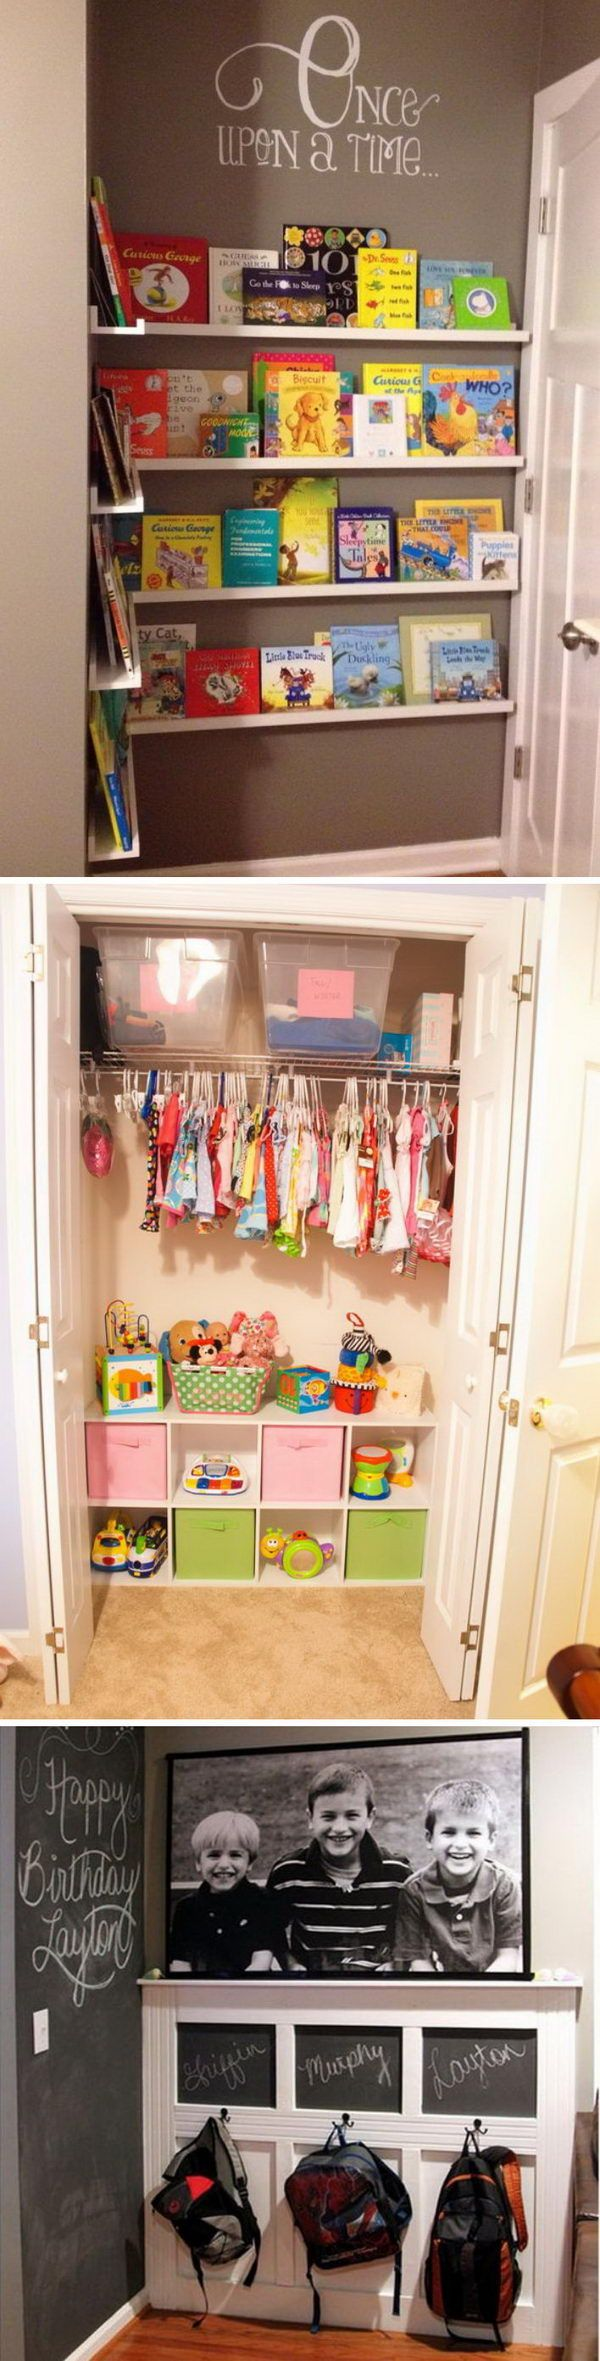 30 Creative Storage Ideas To Organize Kidsu0027 Room 2017